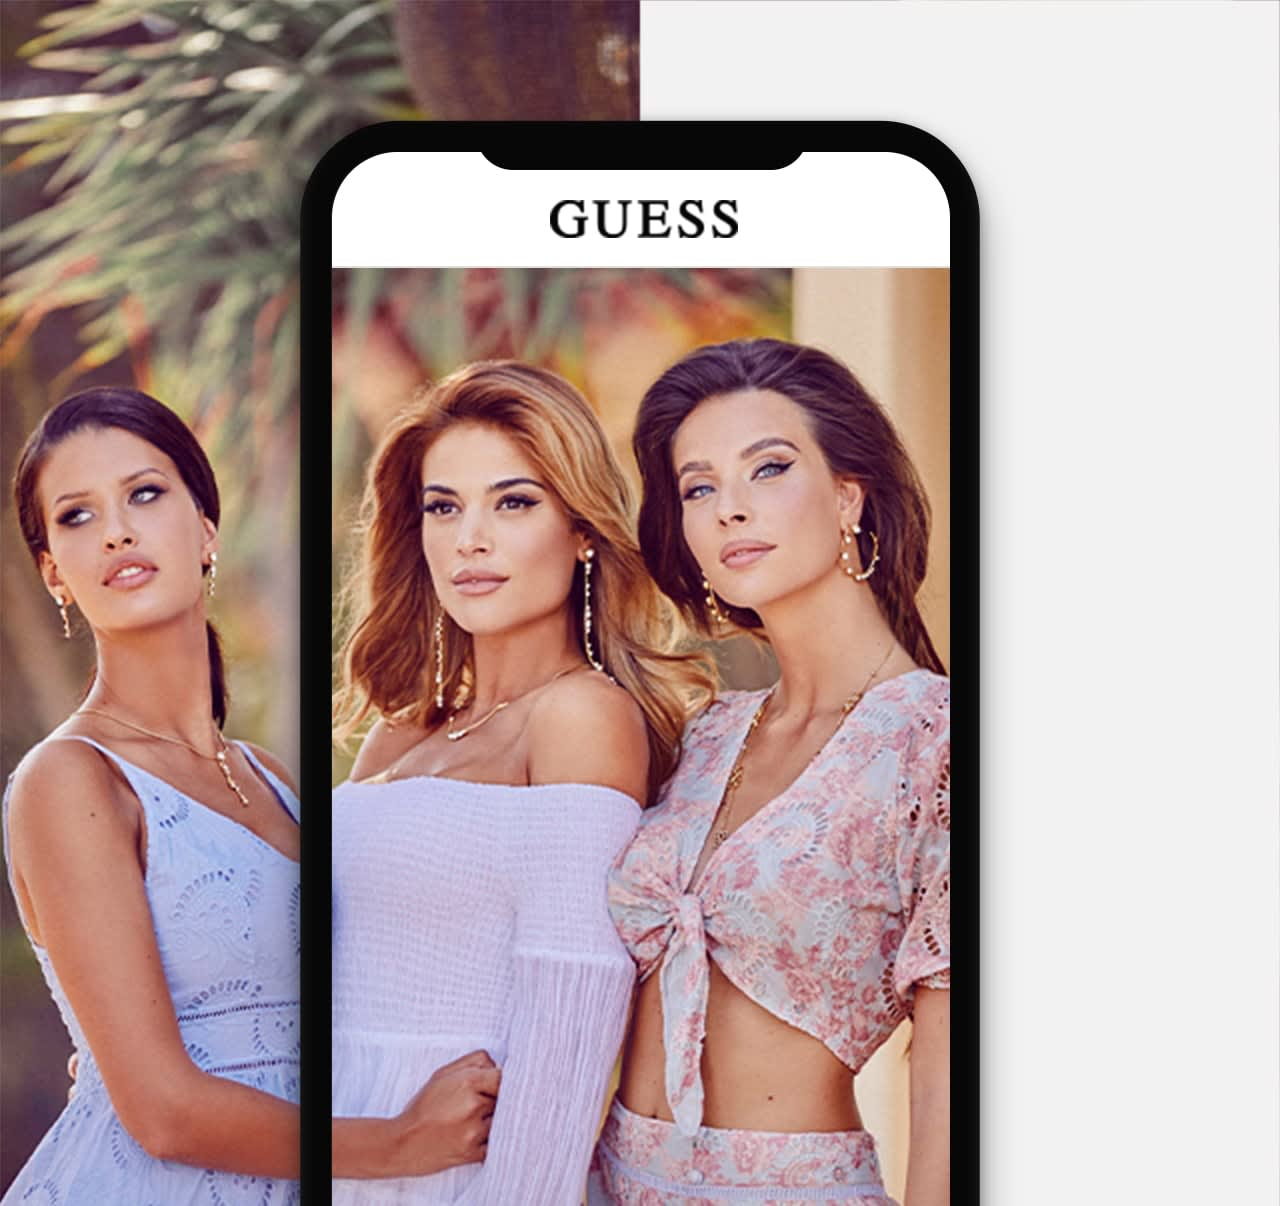 GUESS 81 App: A VIP shopping experience